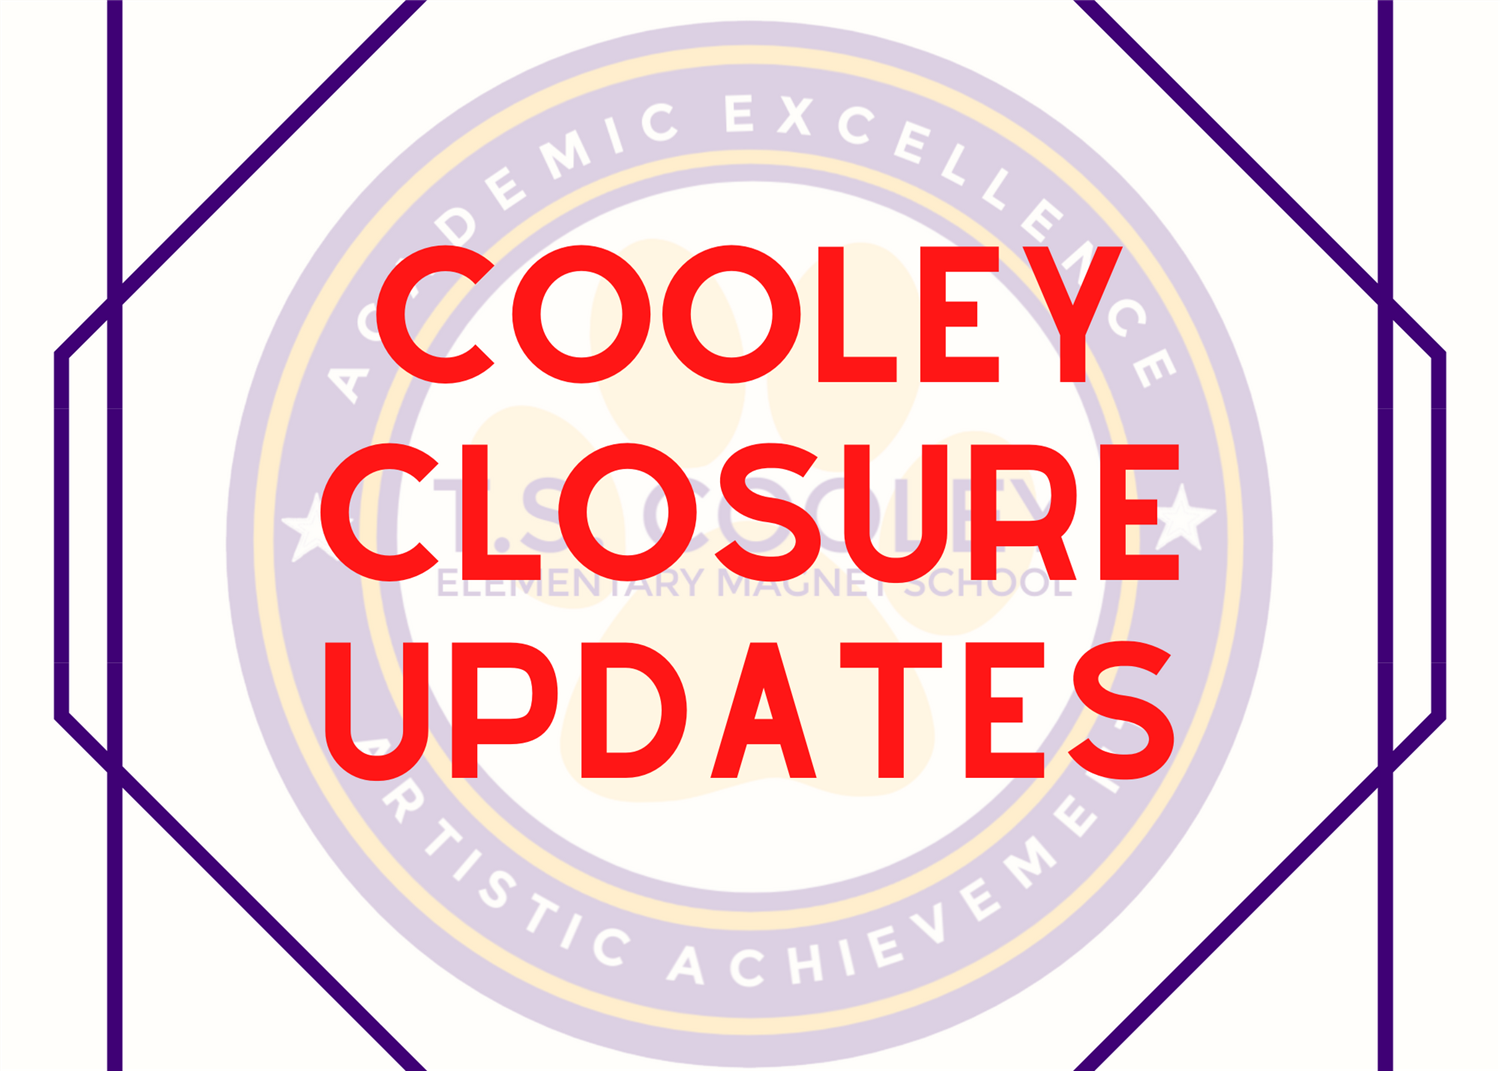 COOLEY CLOSURE UPDATES